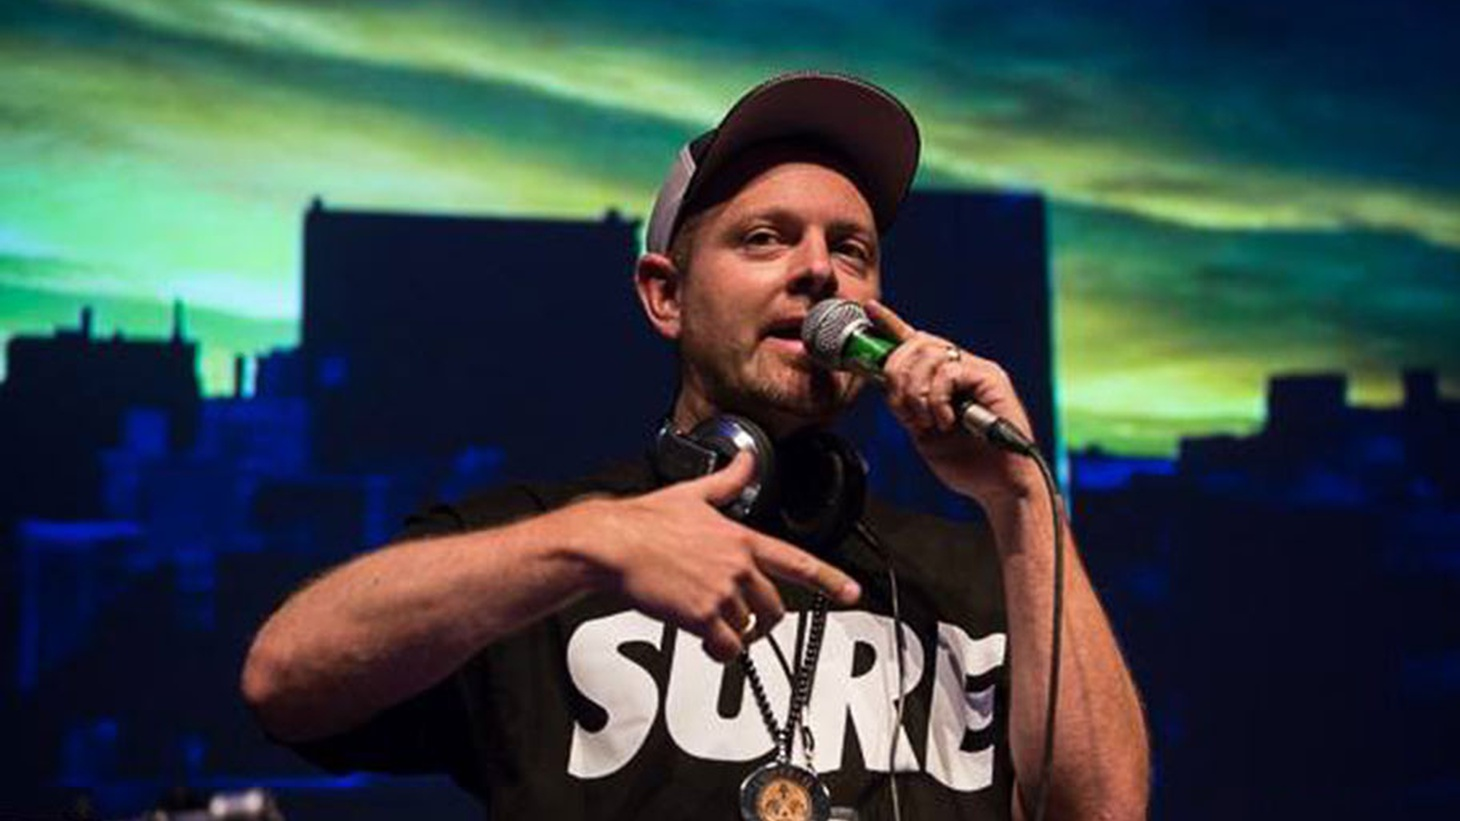 Legendary turntablist and beat master DJ Shadow returns with his fourth solo album since the release of his groundbreaking debut over 20 years ago.